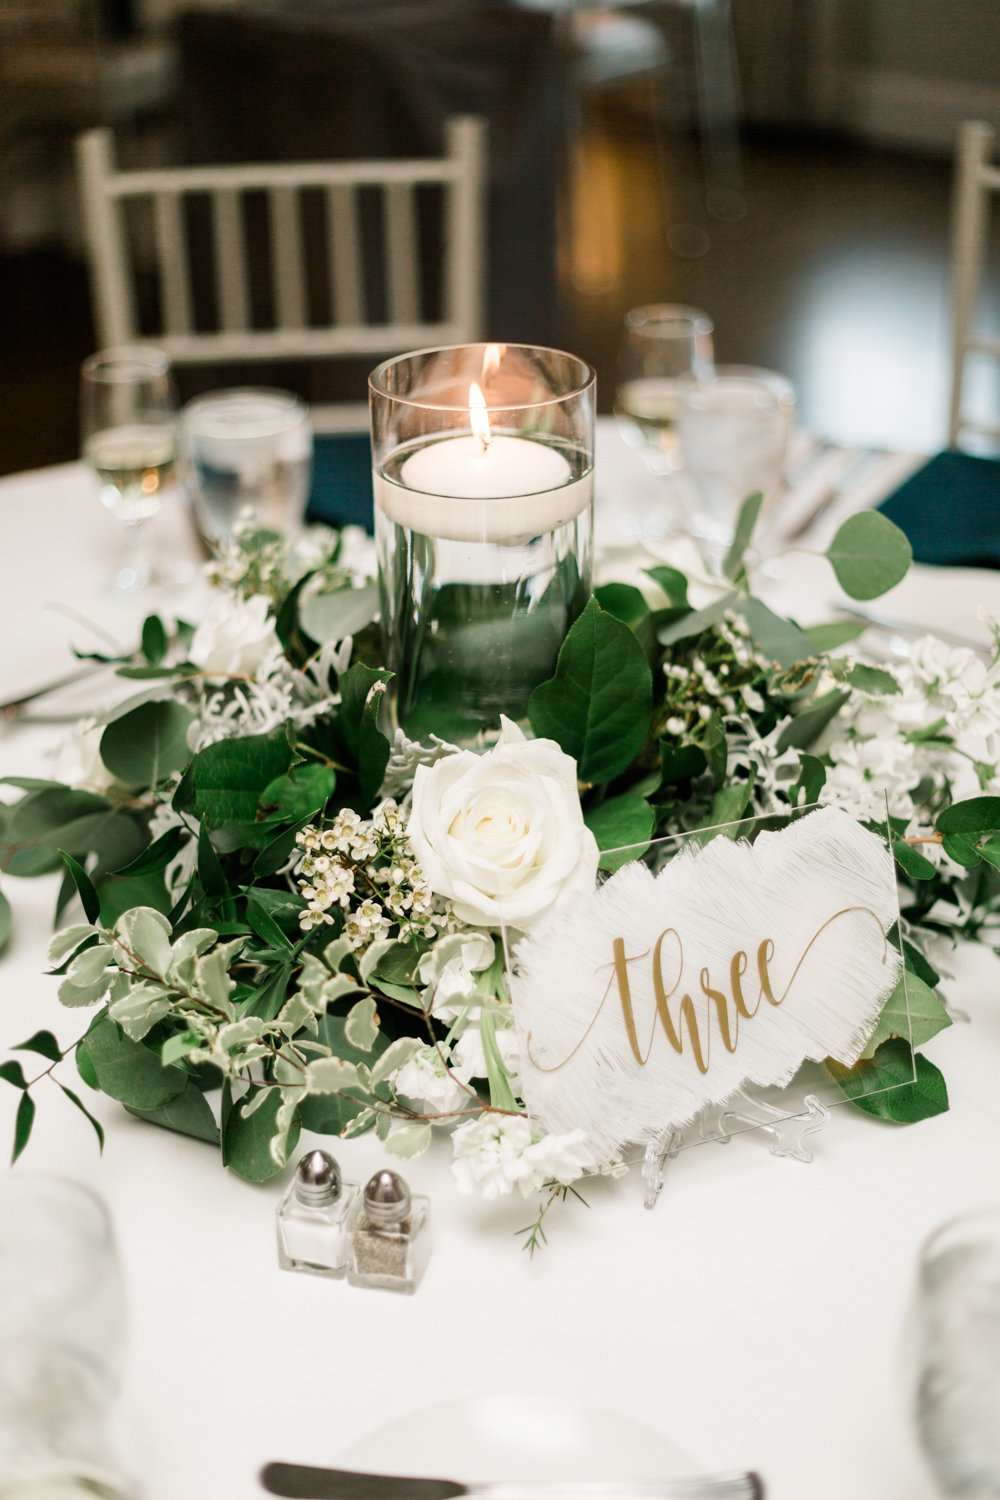 acrylic-table-number-saphire-estate-wedding